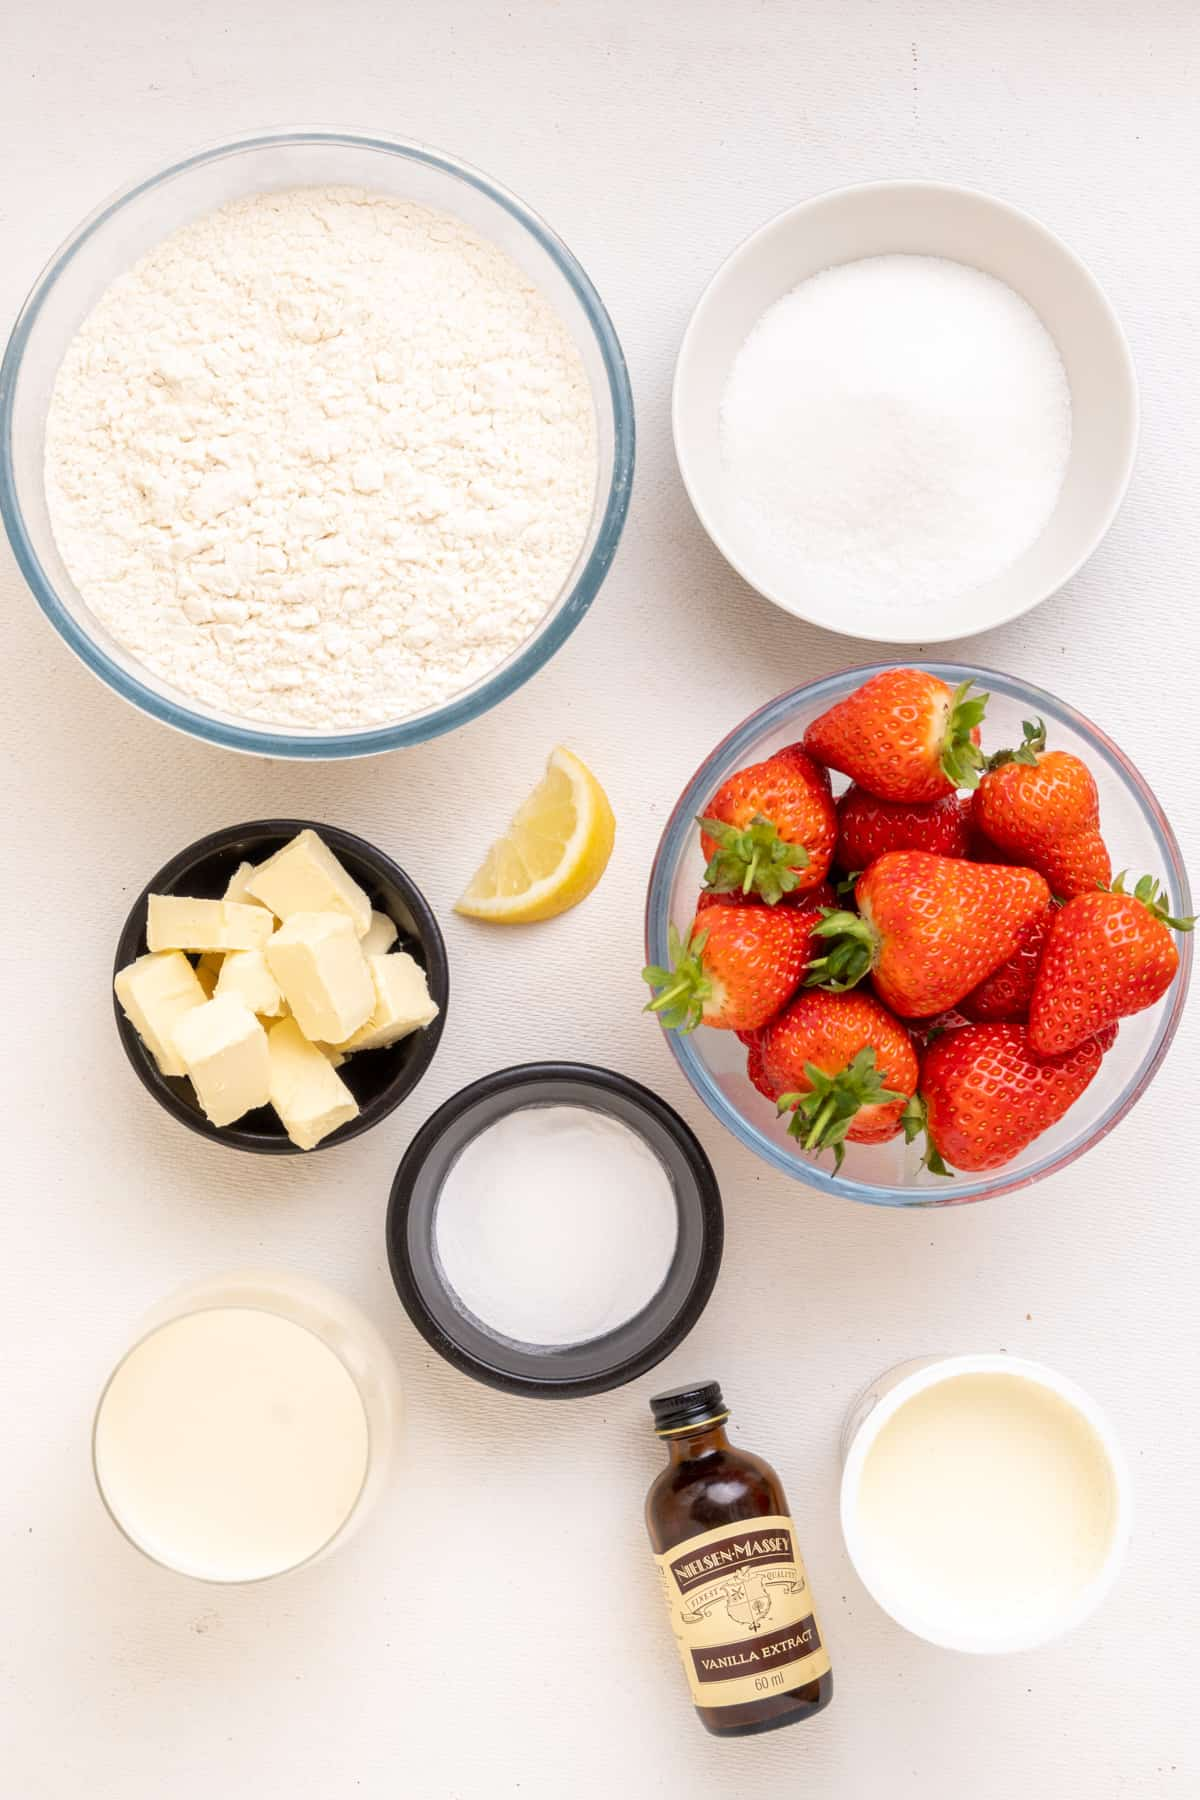 The ingredients for vegan strawberry shortcake: Strawberries, white flour, sugar, baking powder, cubes of vegan butter, soy milk, vegan whipping cream, vanilla extract and a small piece of lemon.